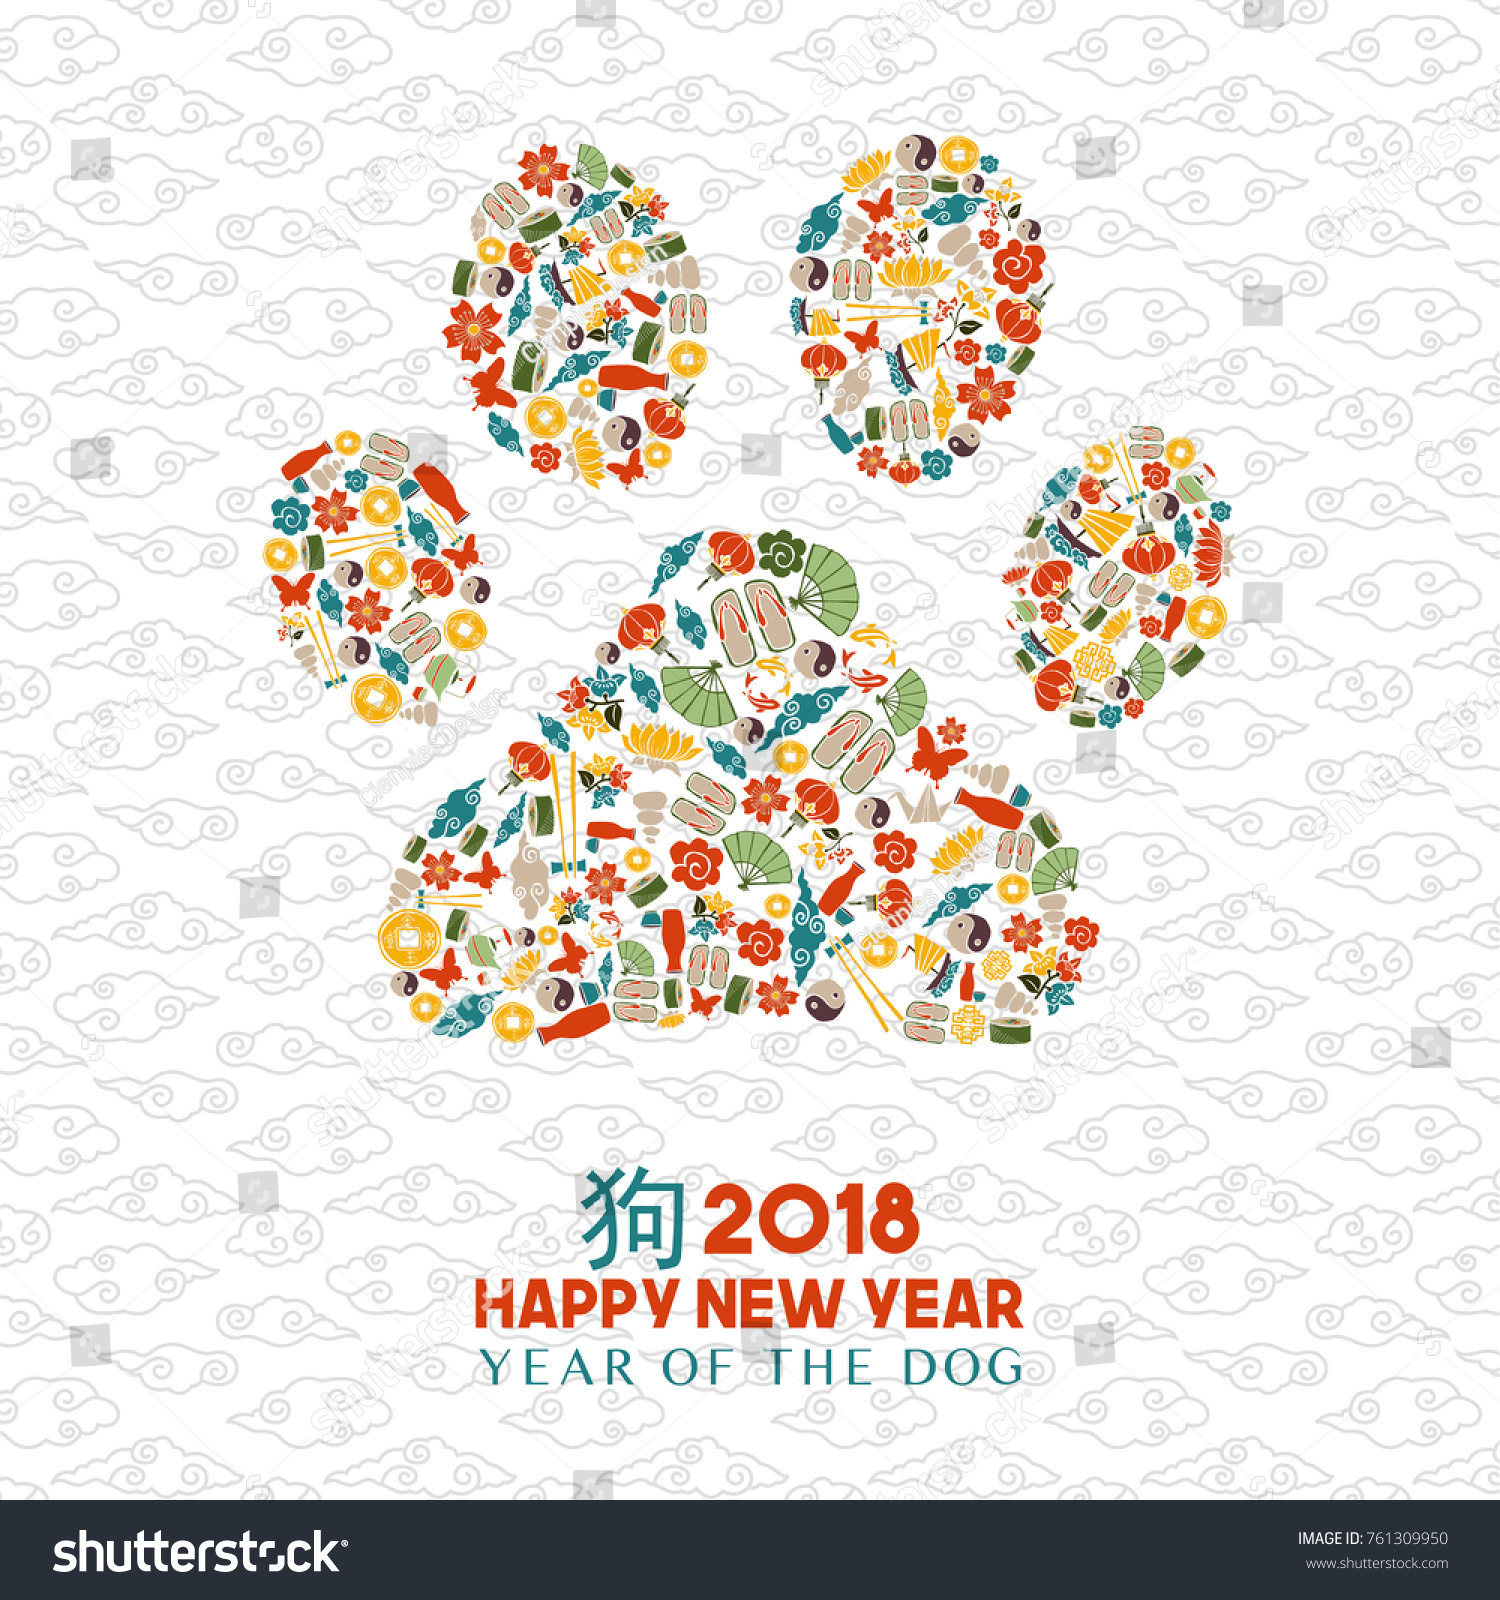 happy chinese new year 2018 greeting card illustration with traditional asian culture icons making dog paw